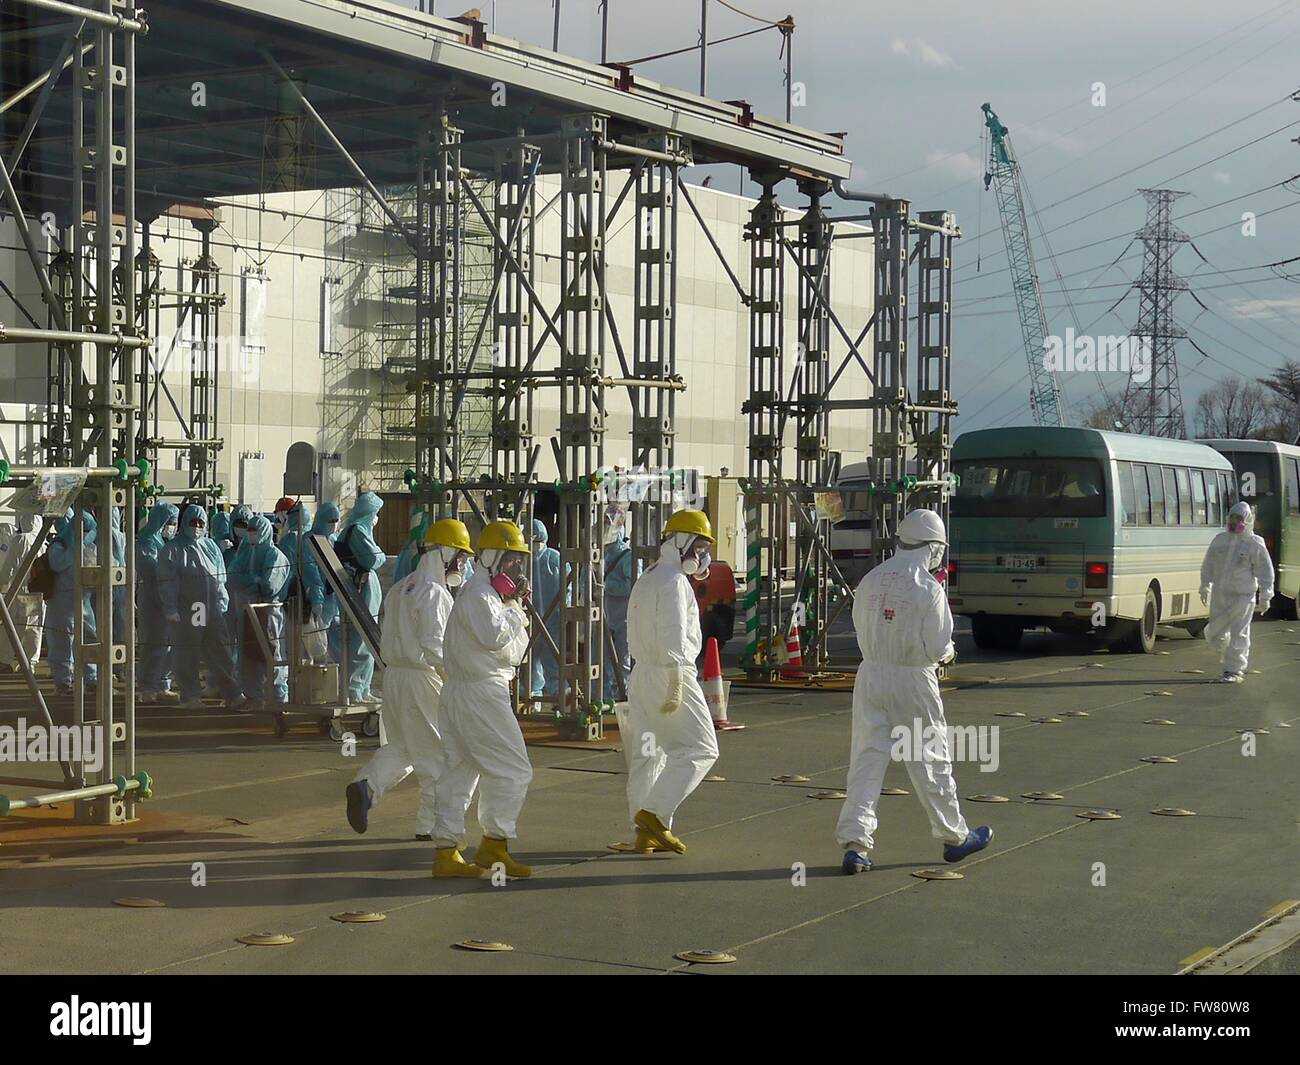 Workers in protective clothing and masks outside the Emergency Response Centre at the Fukushima Daiichi Nuclear - Stock Image